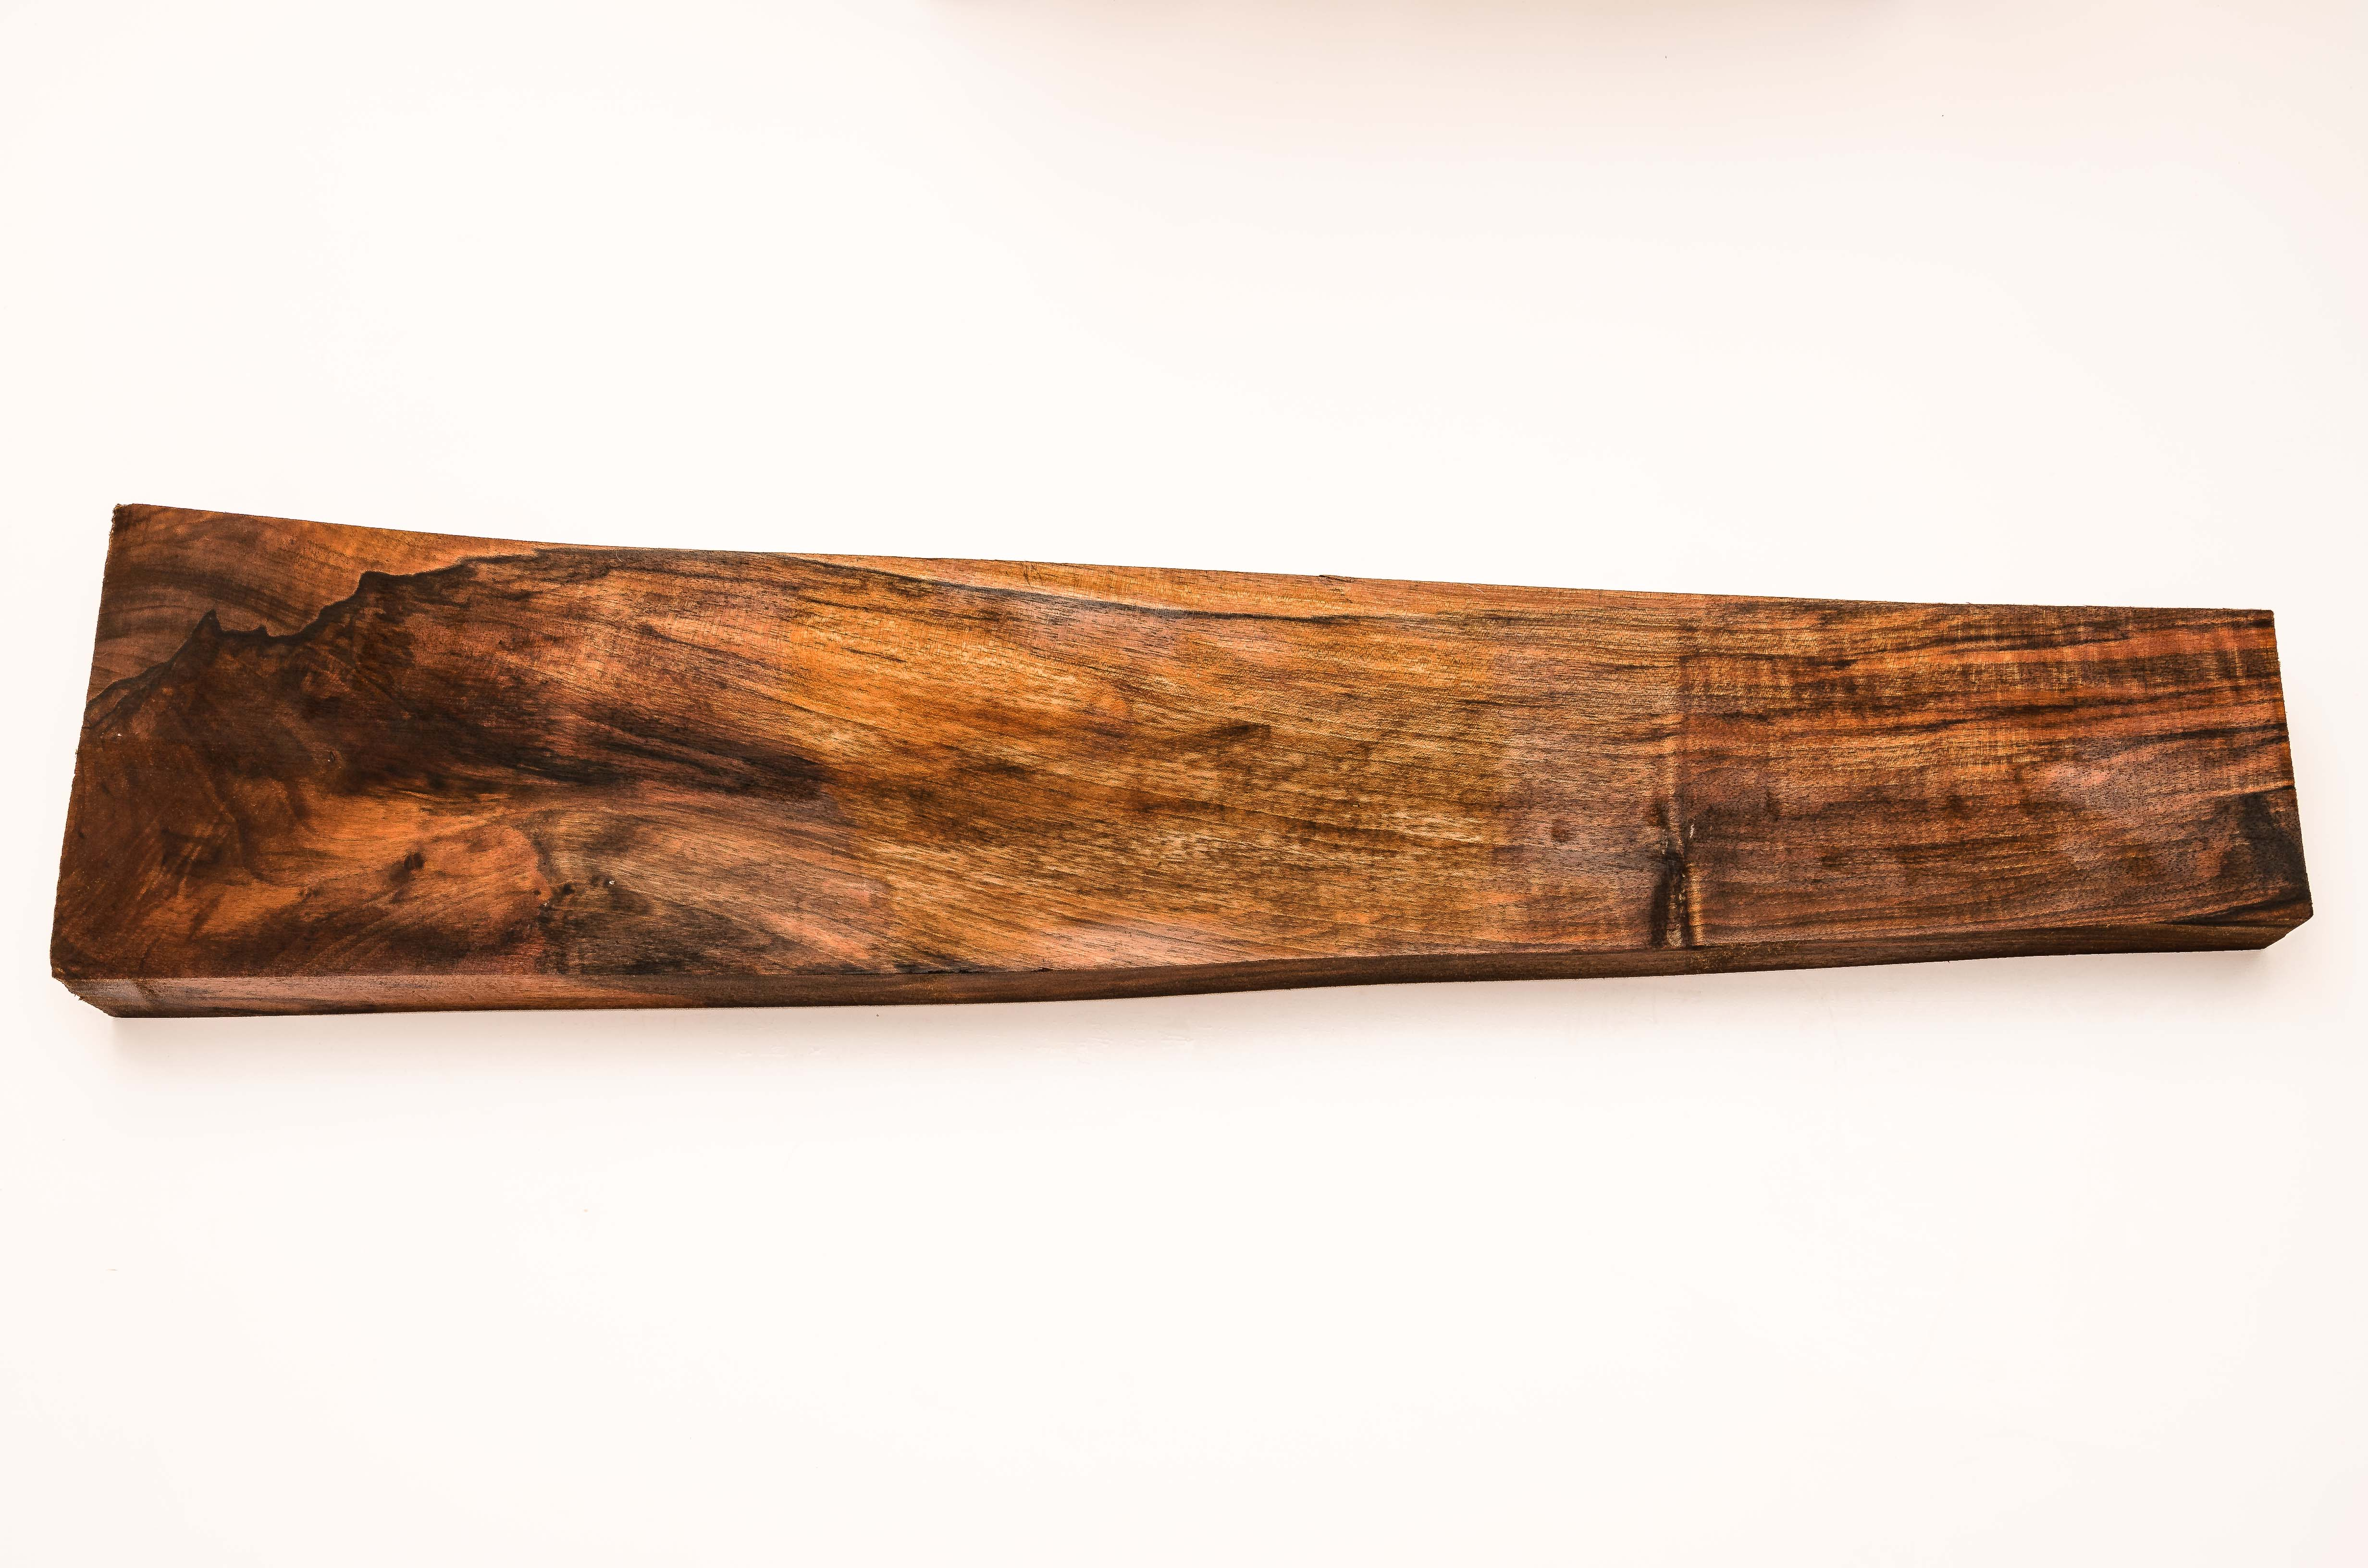 walnut_stock_blanks_for_guns_and_rifles-0649